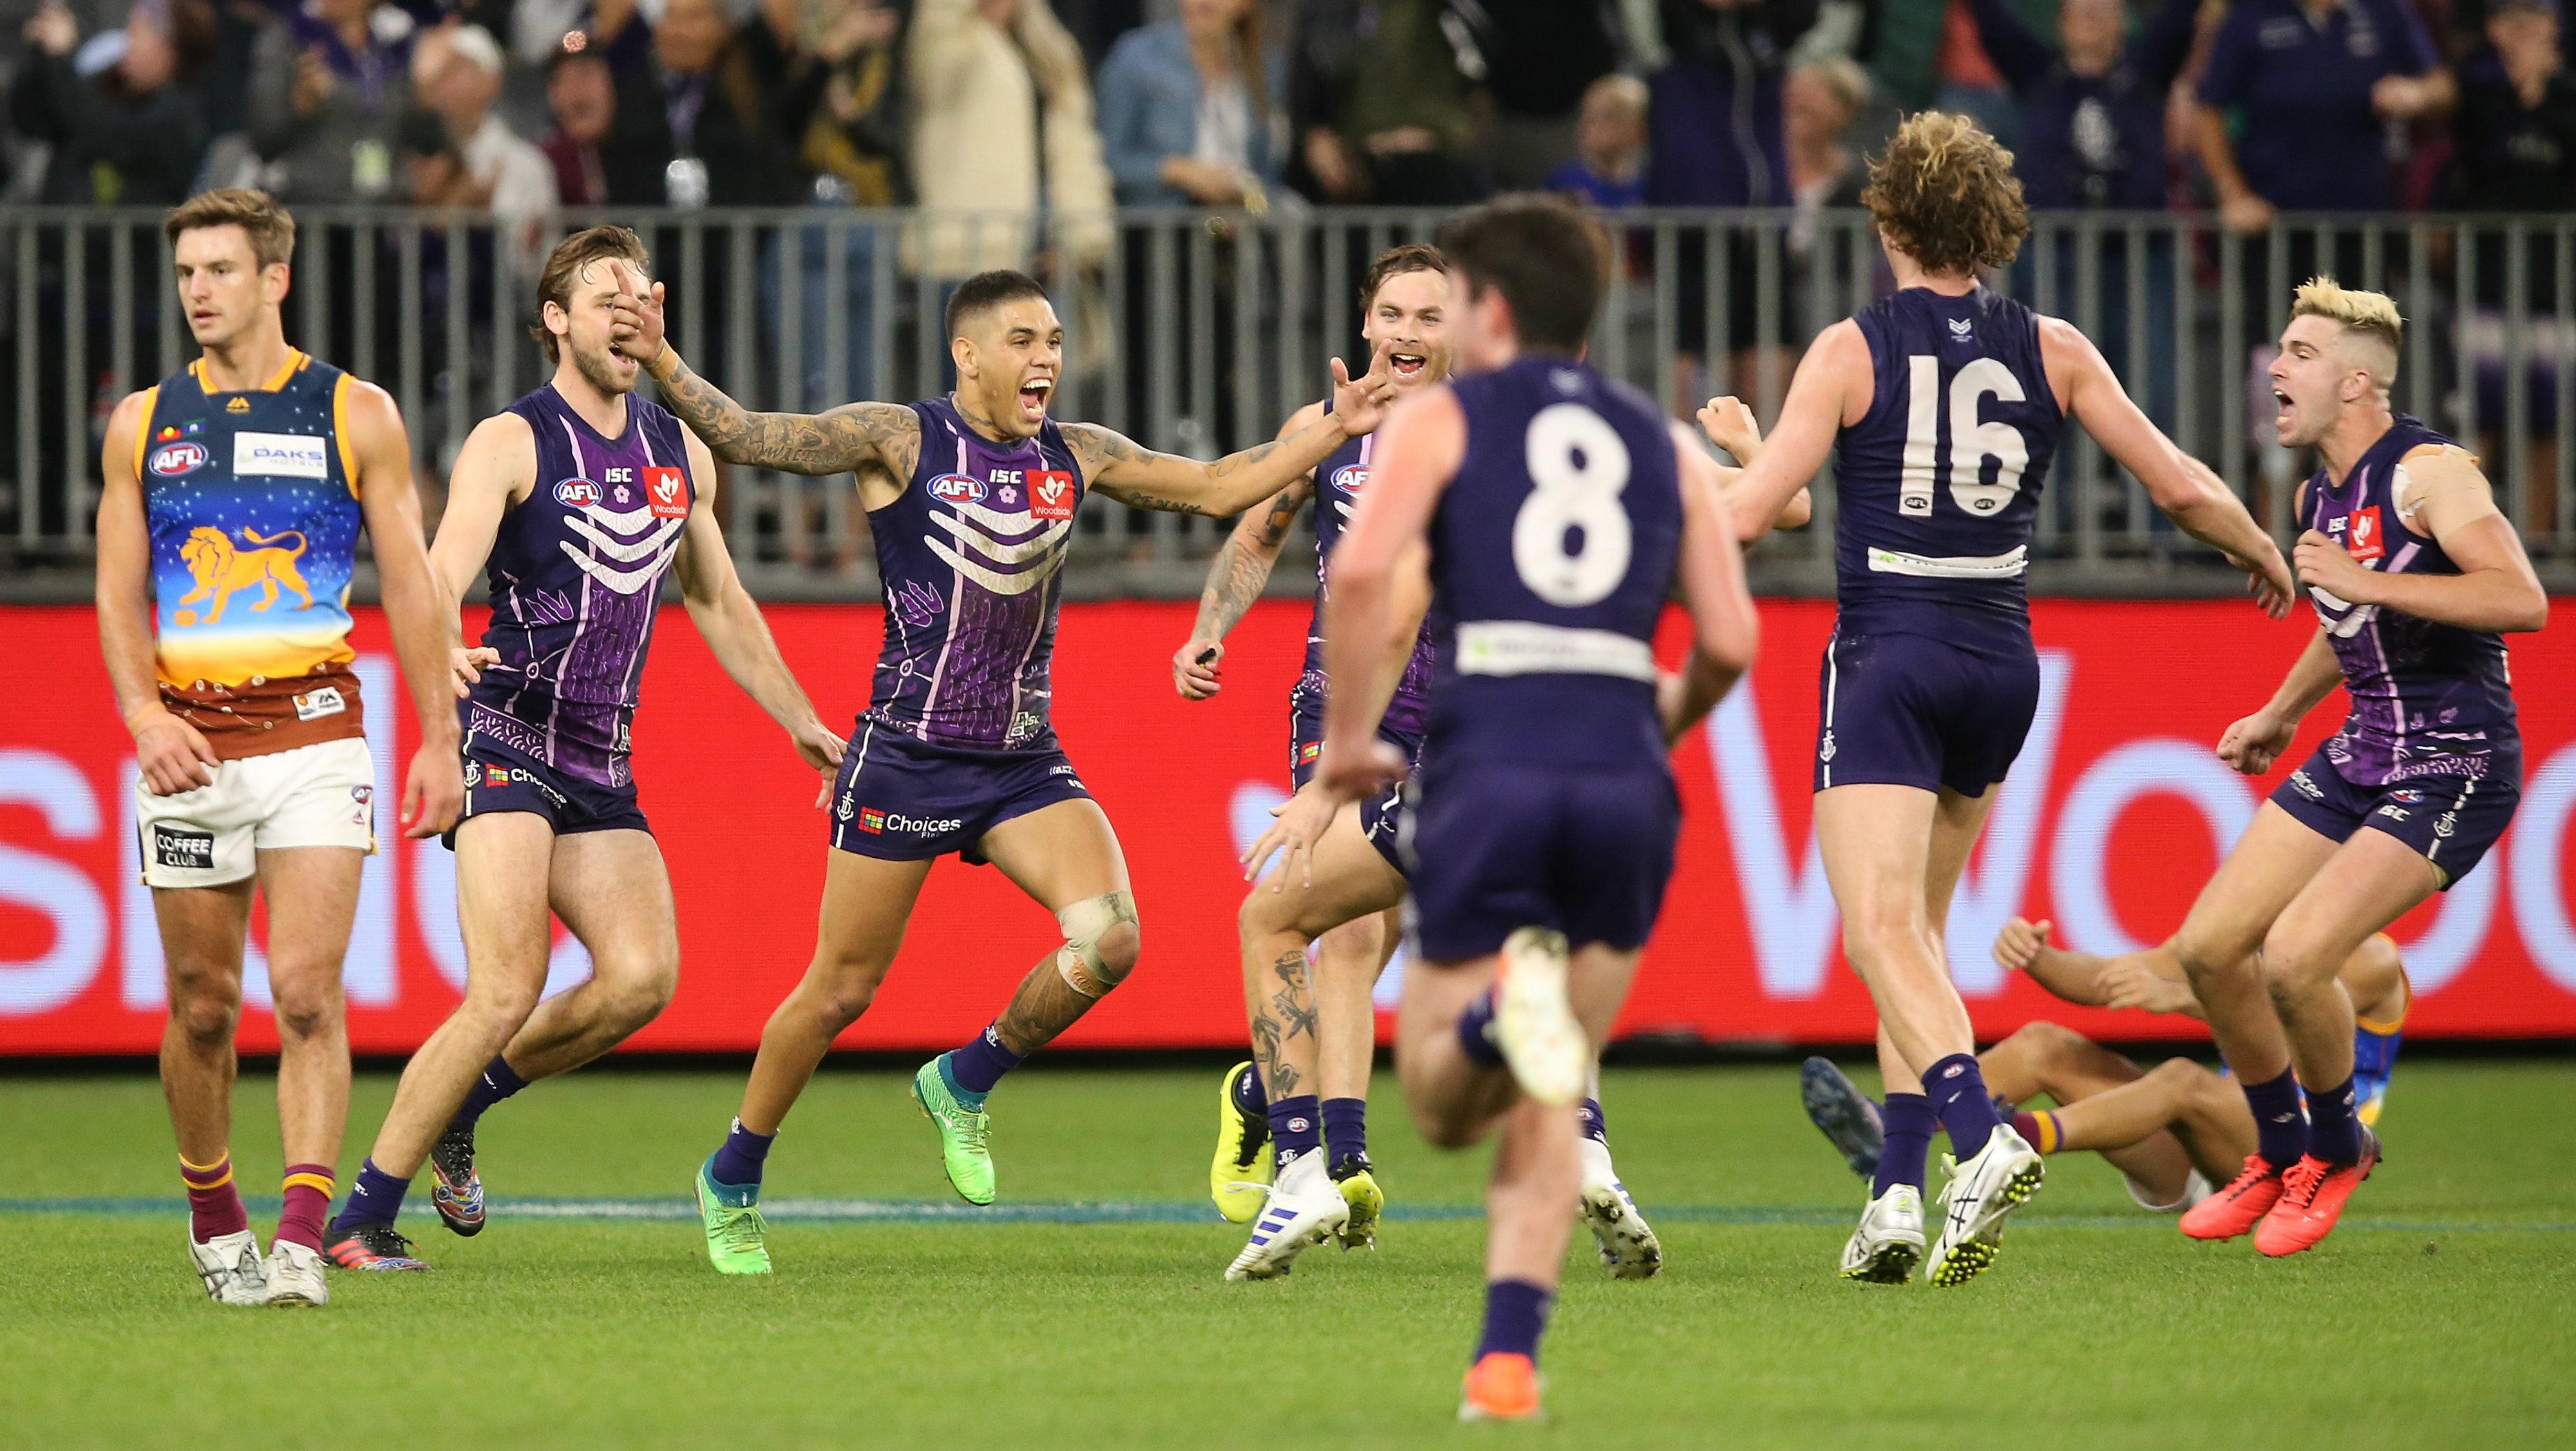 Fremantle v Brisbane: Michael Walters wins it for the Dockers after the siren